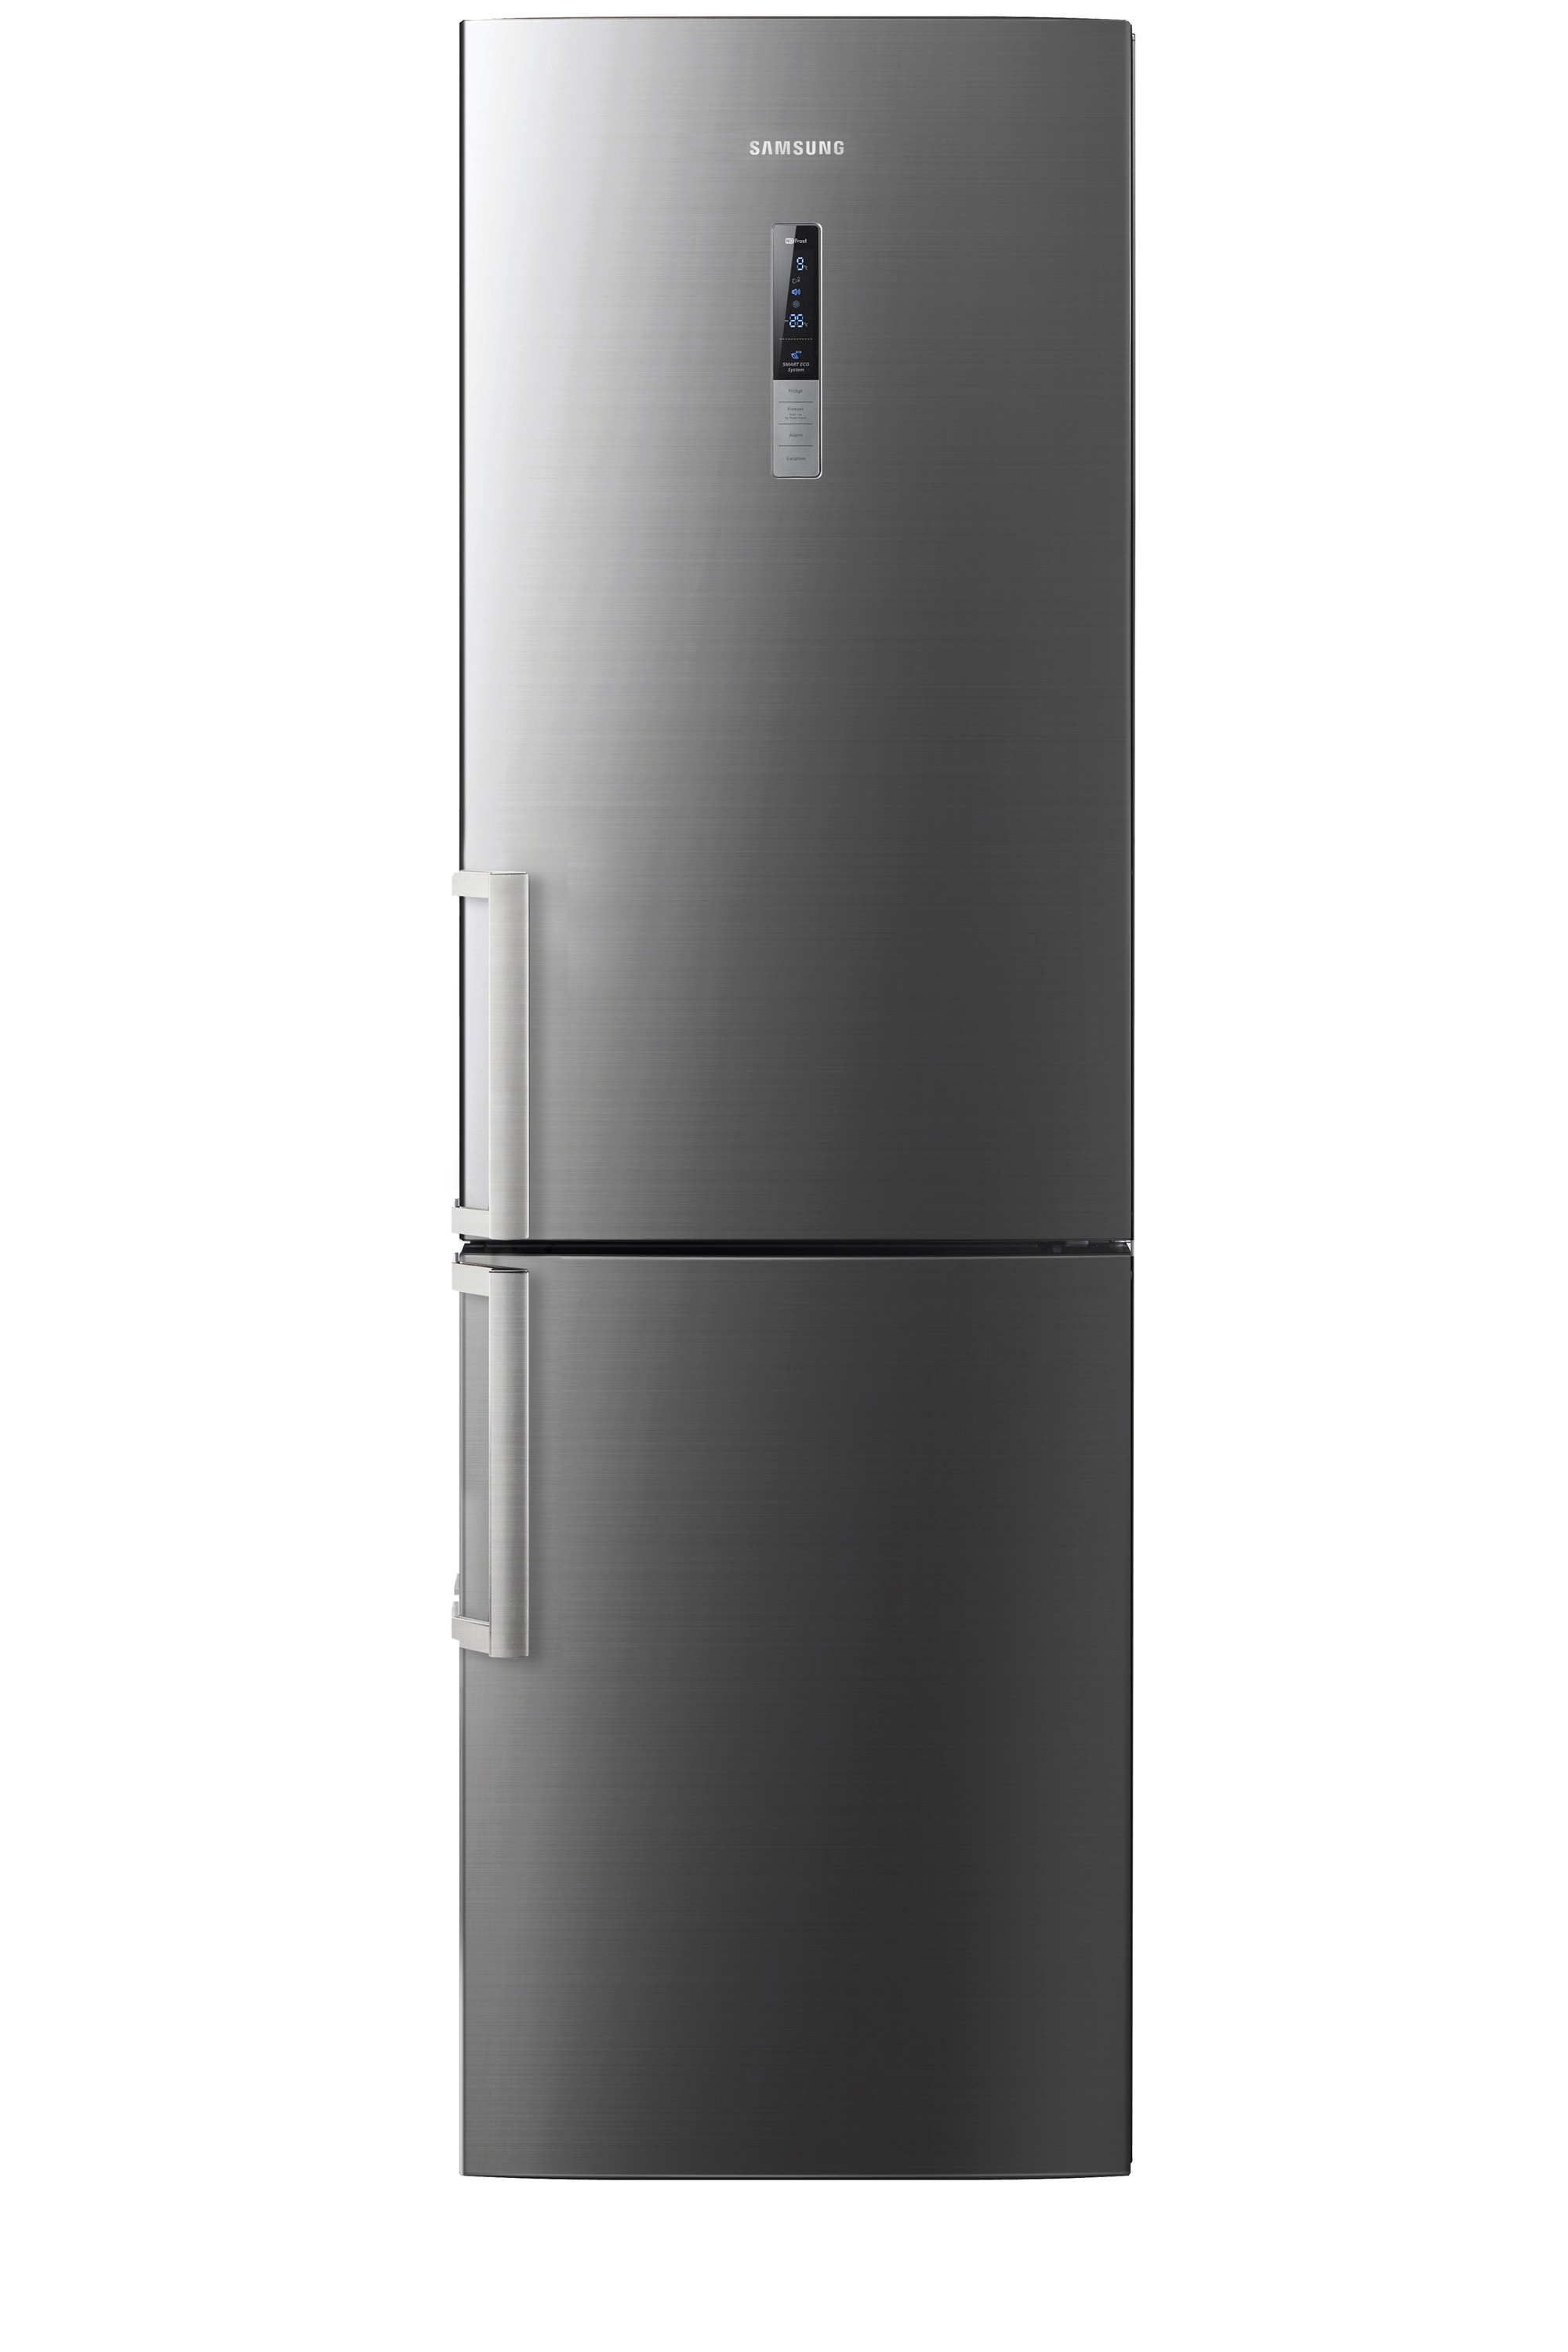 GRANCRU Fridge Freezer with Larger Capacity, 356 L